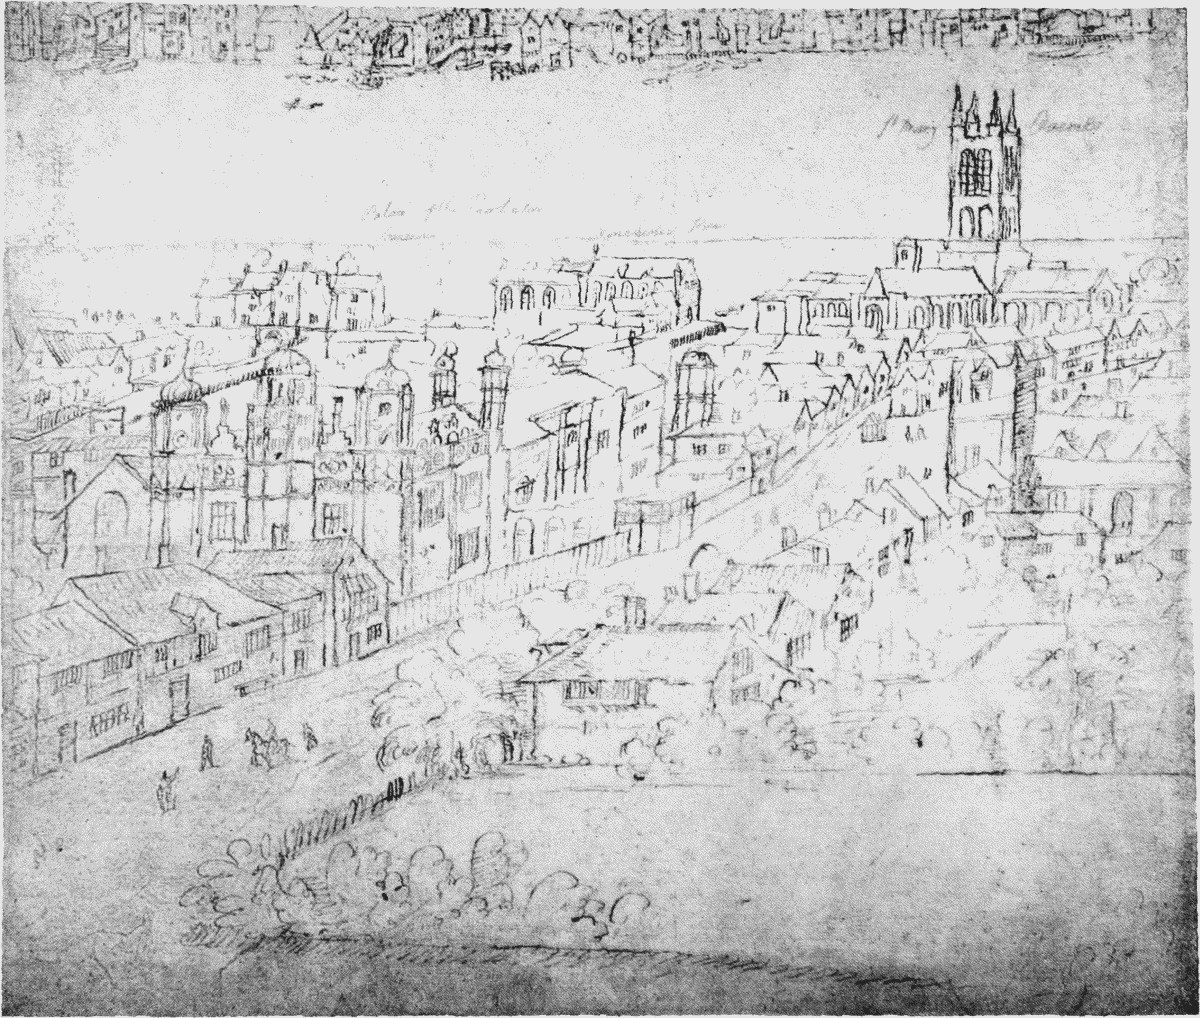 Suffolk Place C 1560 By Wyngaerde On Left Of Borough High Street © British History Online